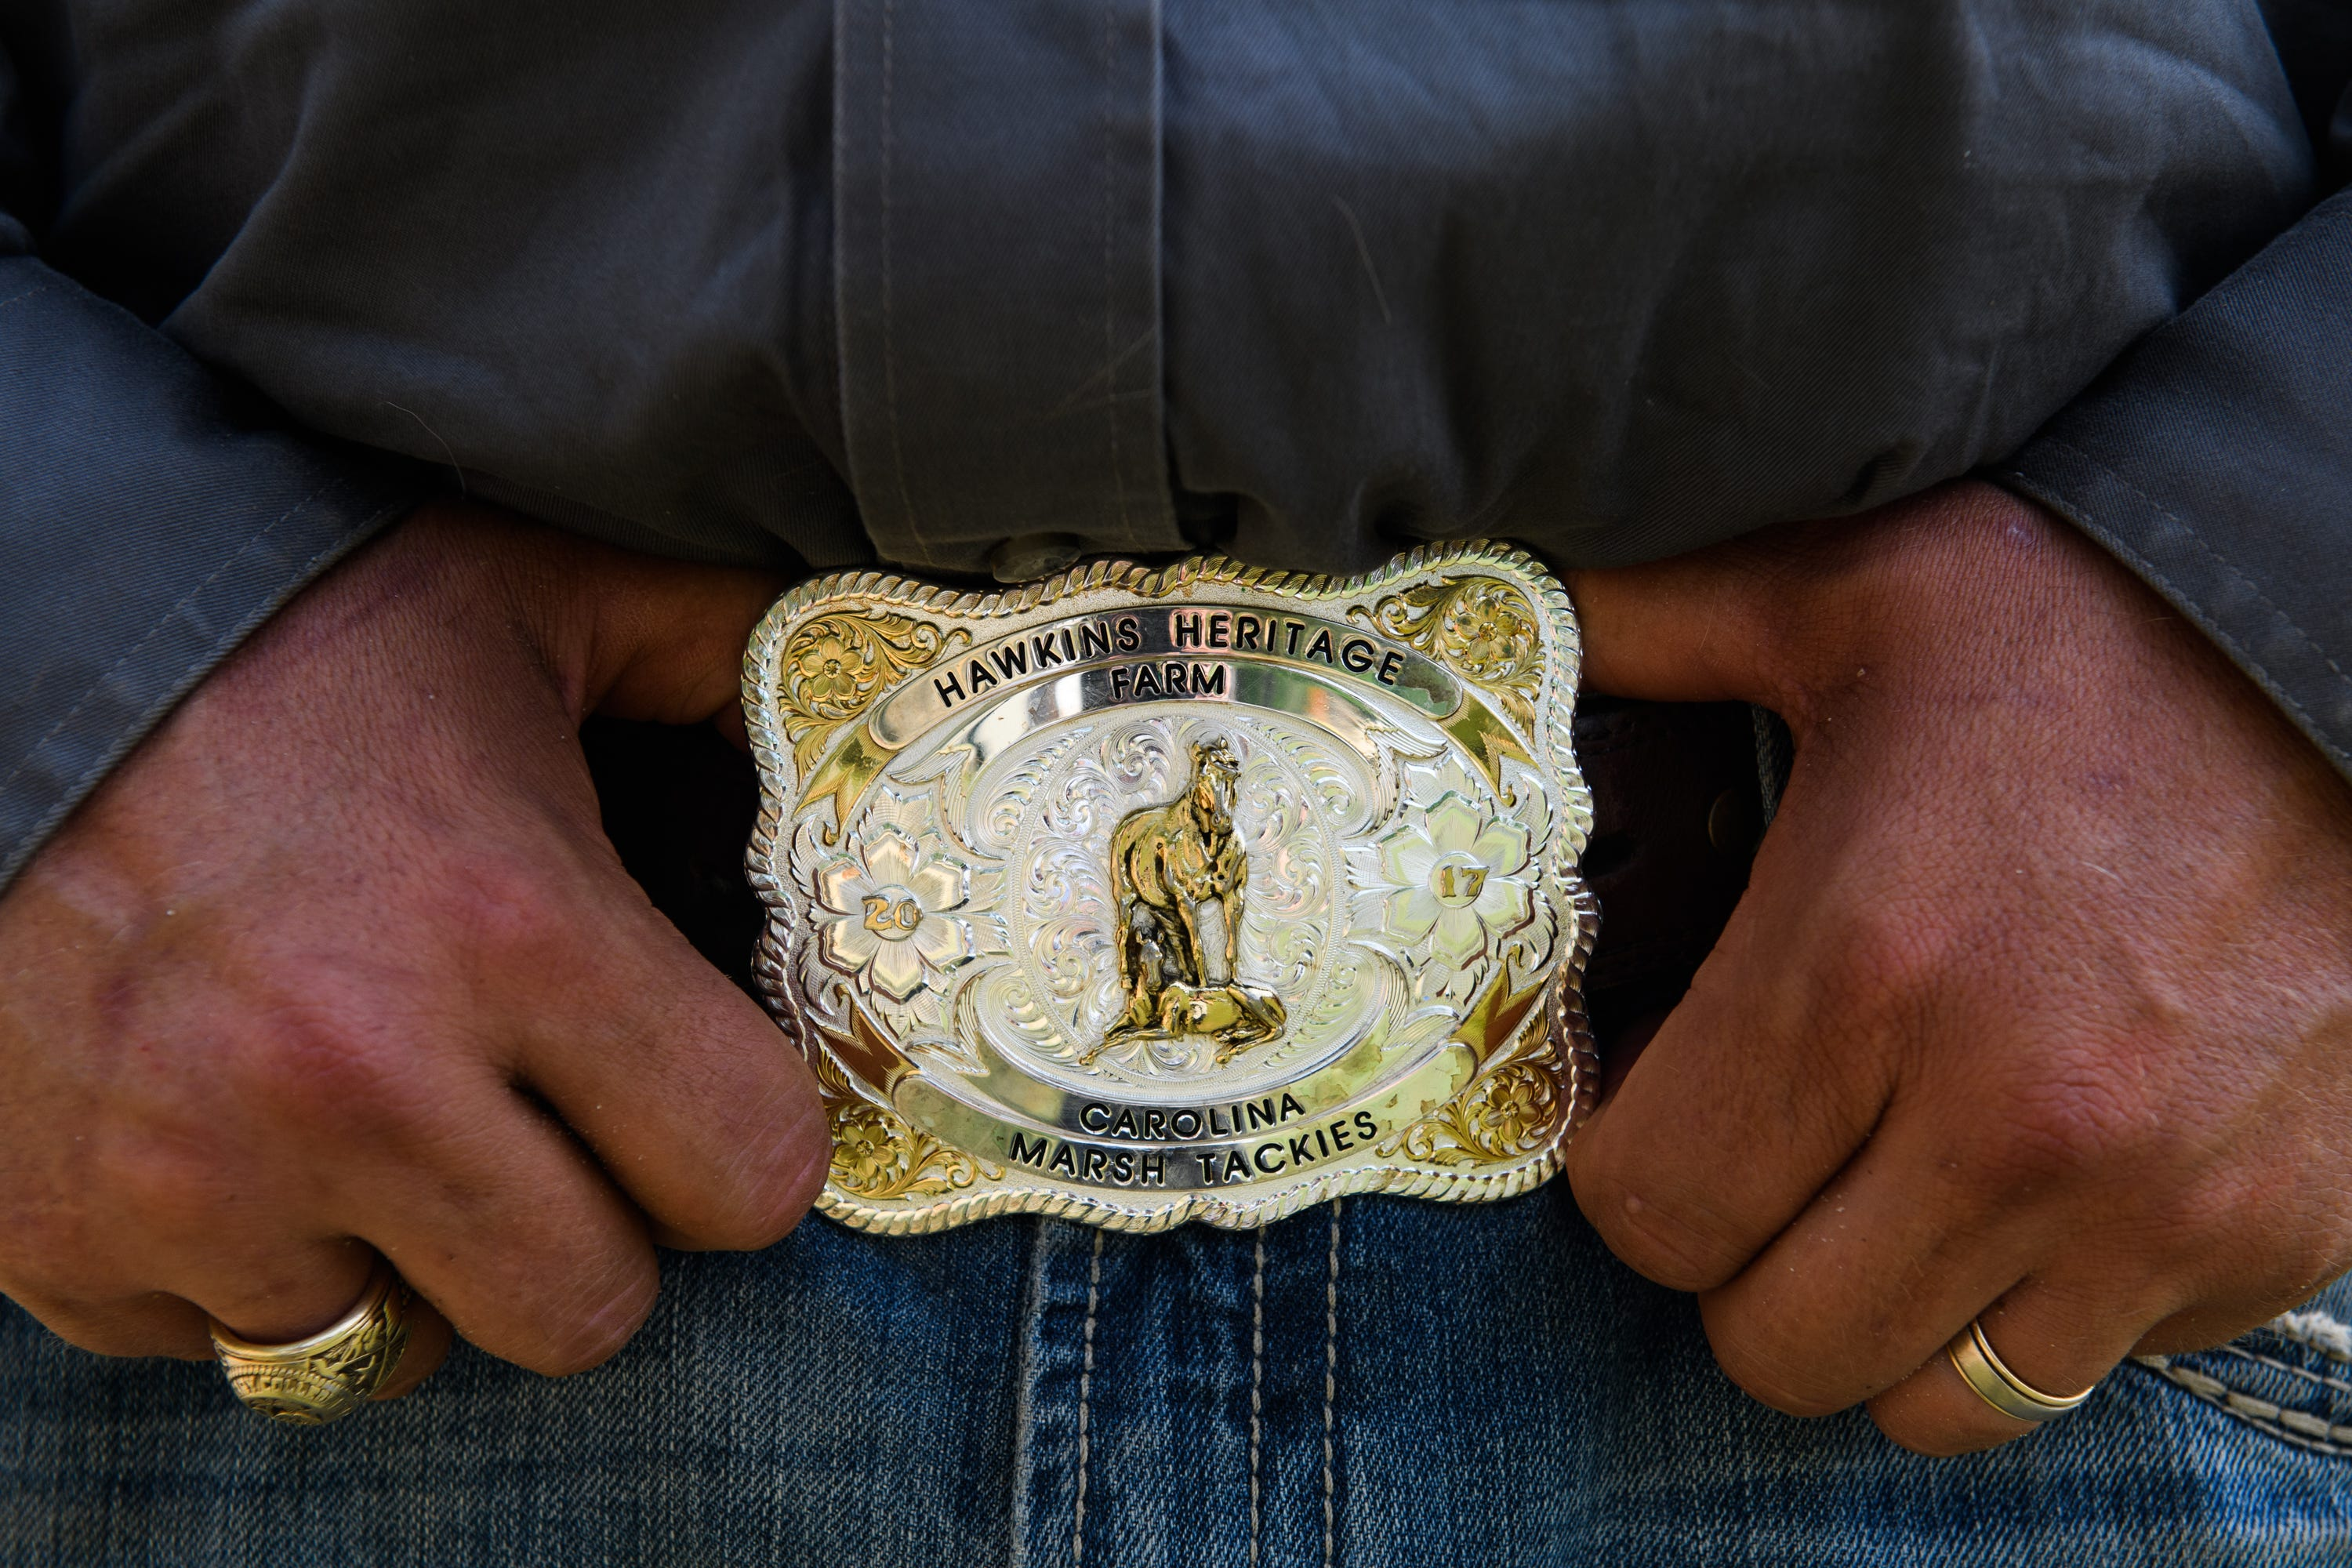 Shannon Hawkins shows off his Hawkins Heritage Farm belt buckle, featuring a Marsh Tacky horse, as he poses for a portrait on April 15, 2021.